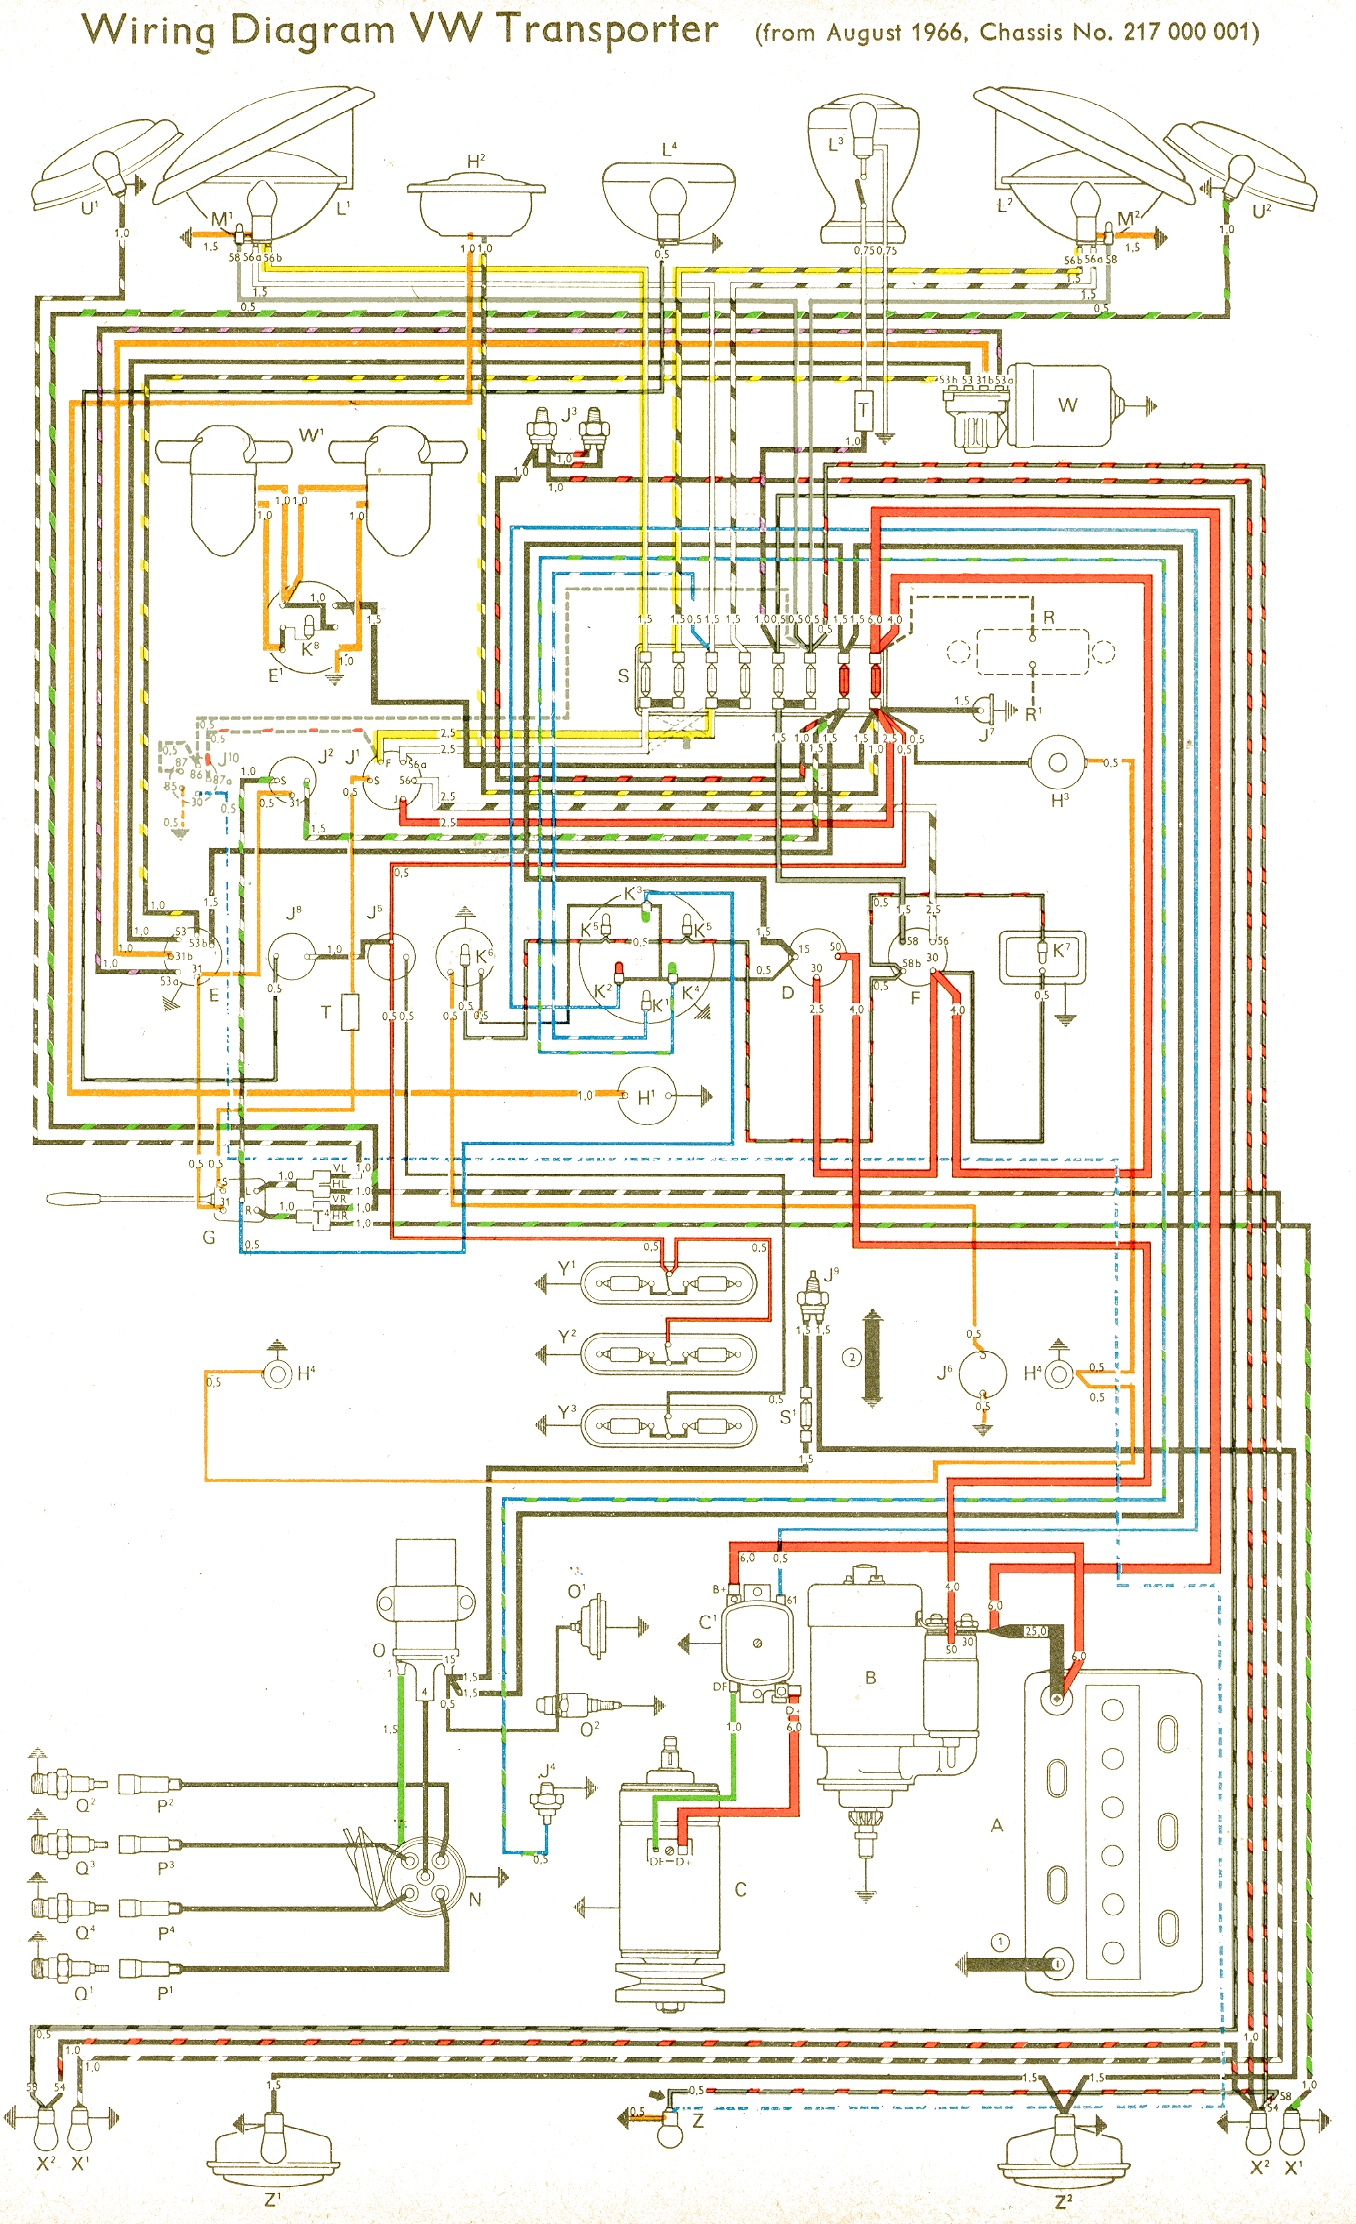 Busguide wiringandfusebox on tl 1000 wiring schematic